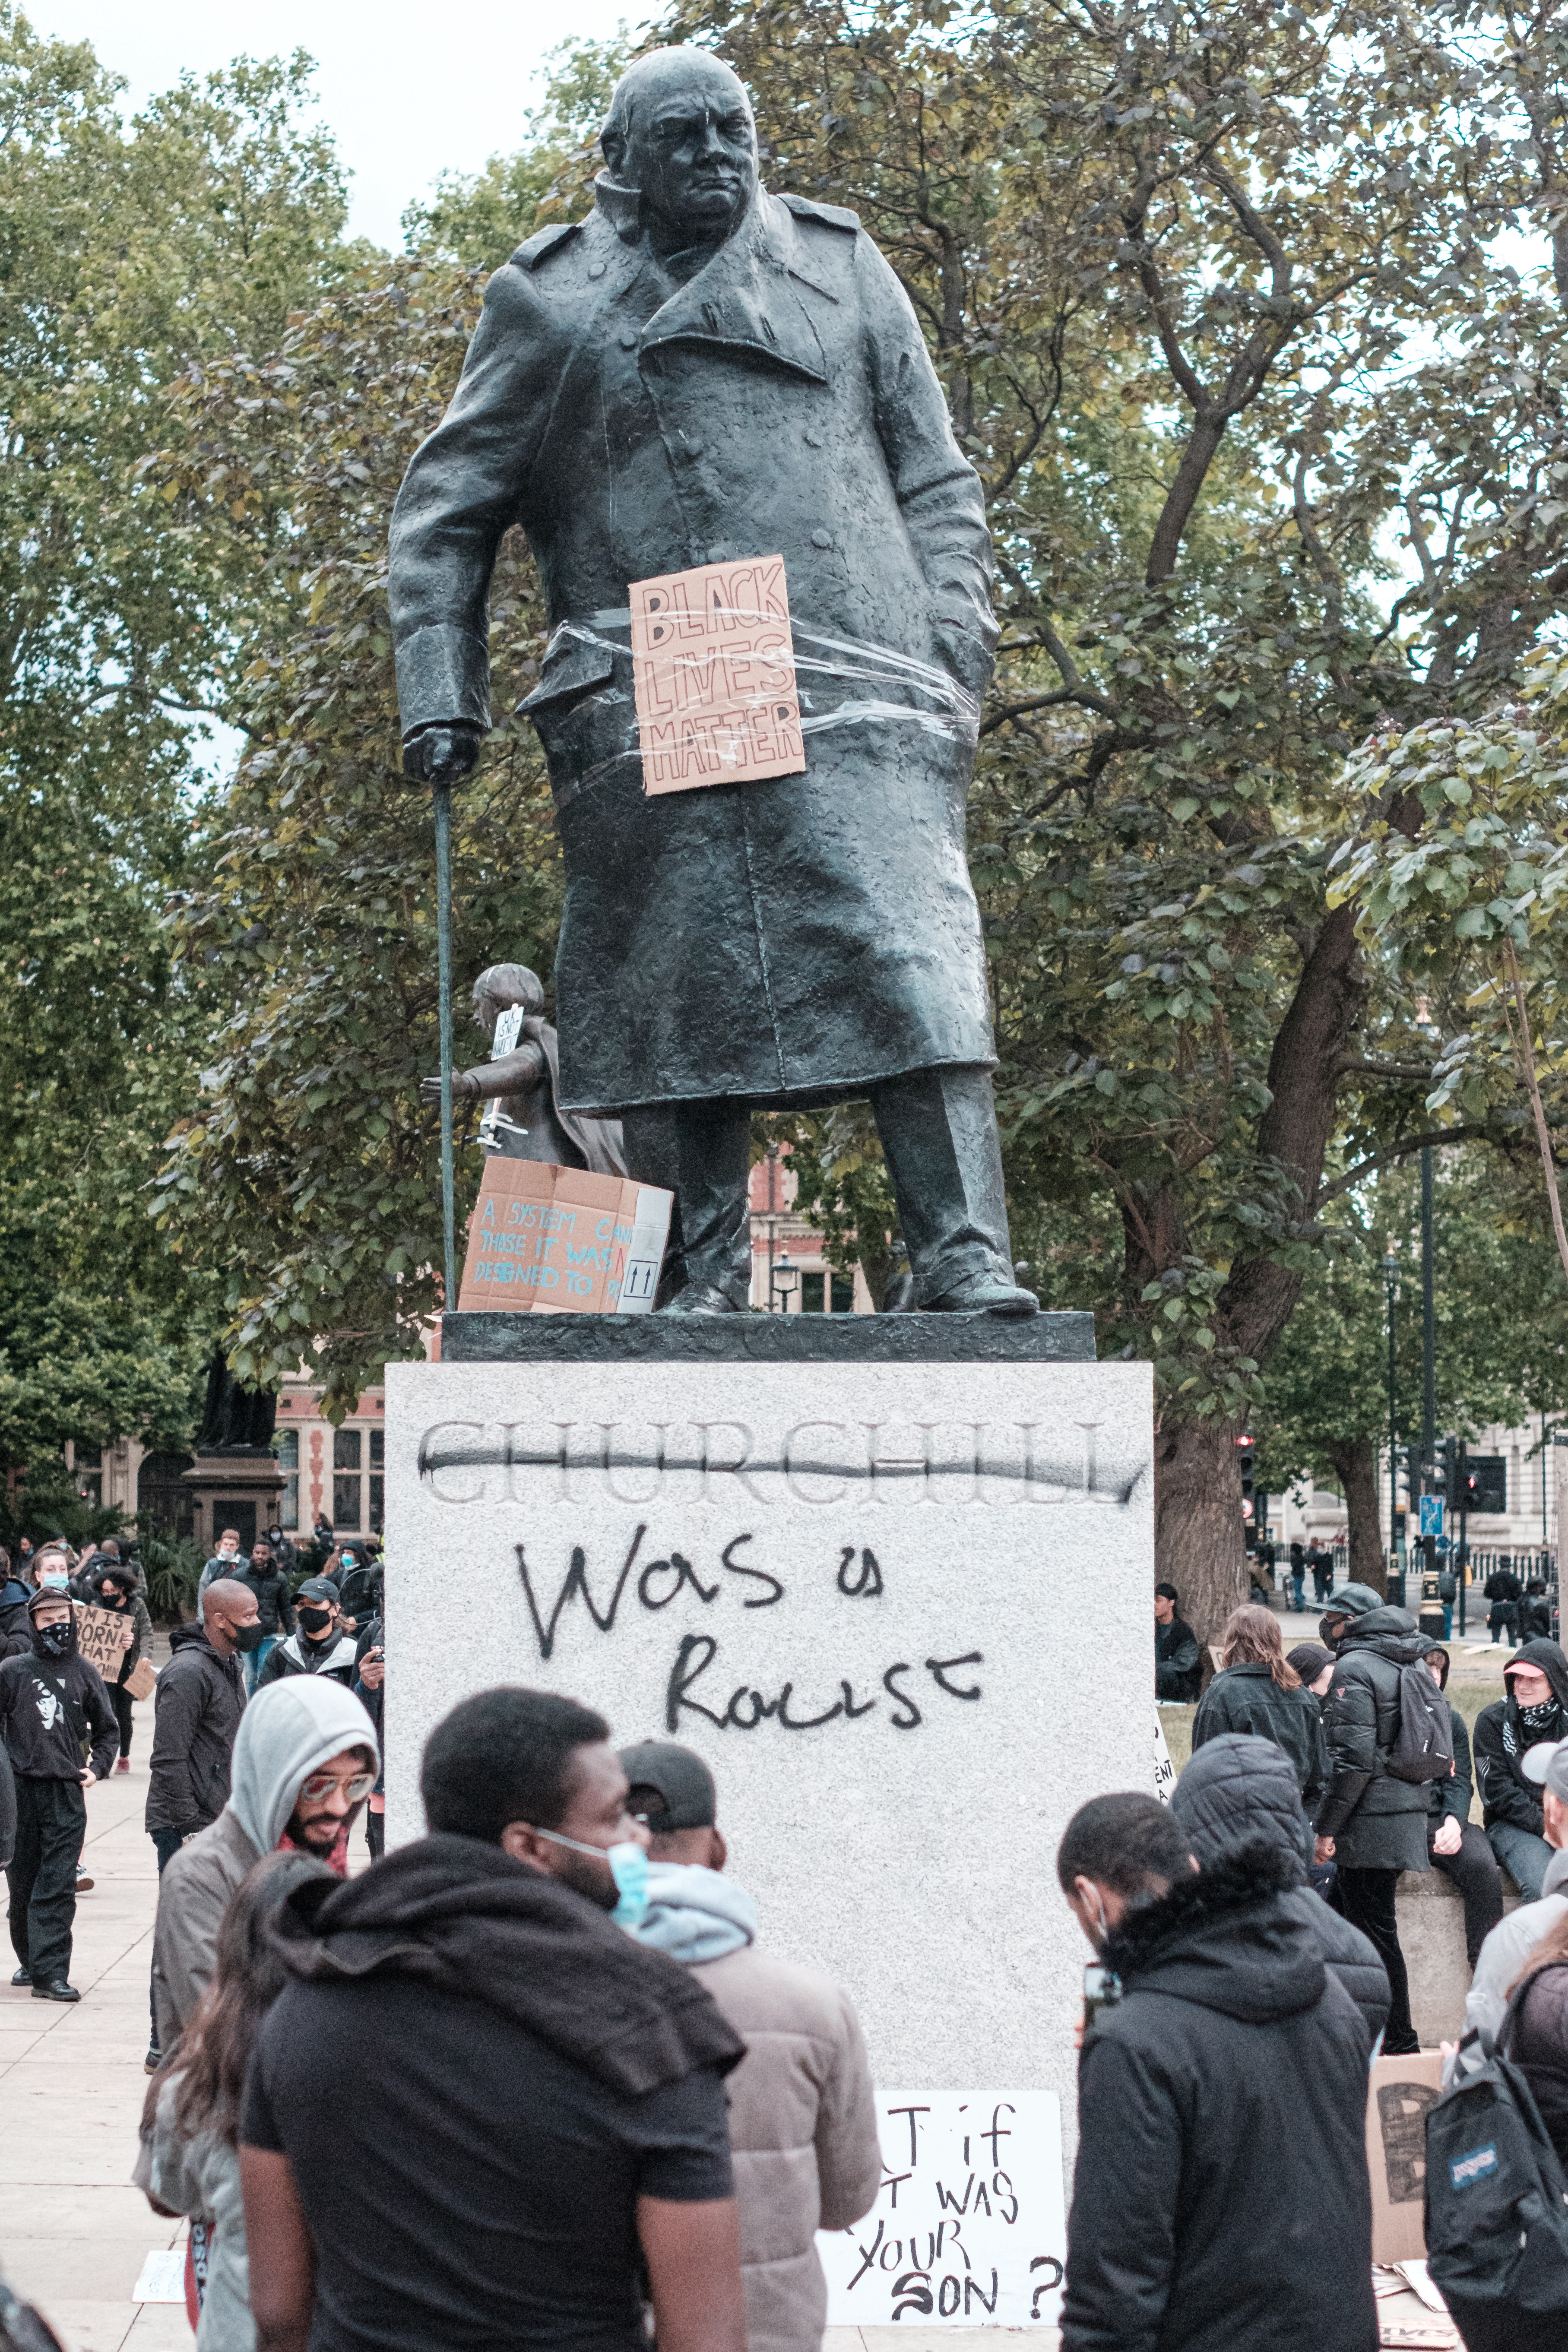 """An image of a group of people in protest against a Winston Churchill statue that has been spray painted with words to read """"Churchill was a racist"""". The statue holds up a sign that reads """"Black Lives Matter"""""""